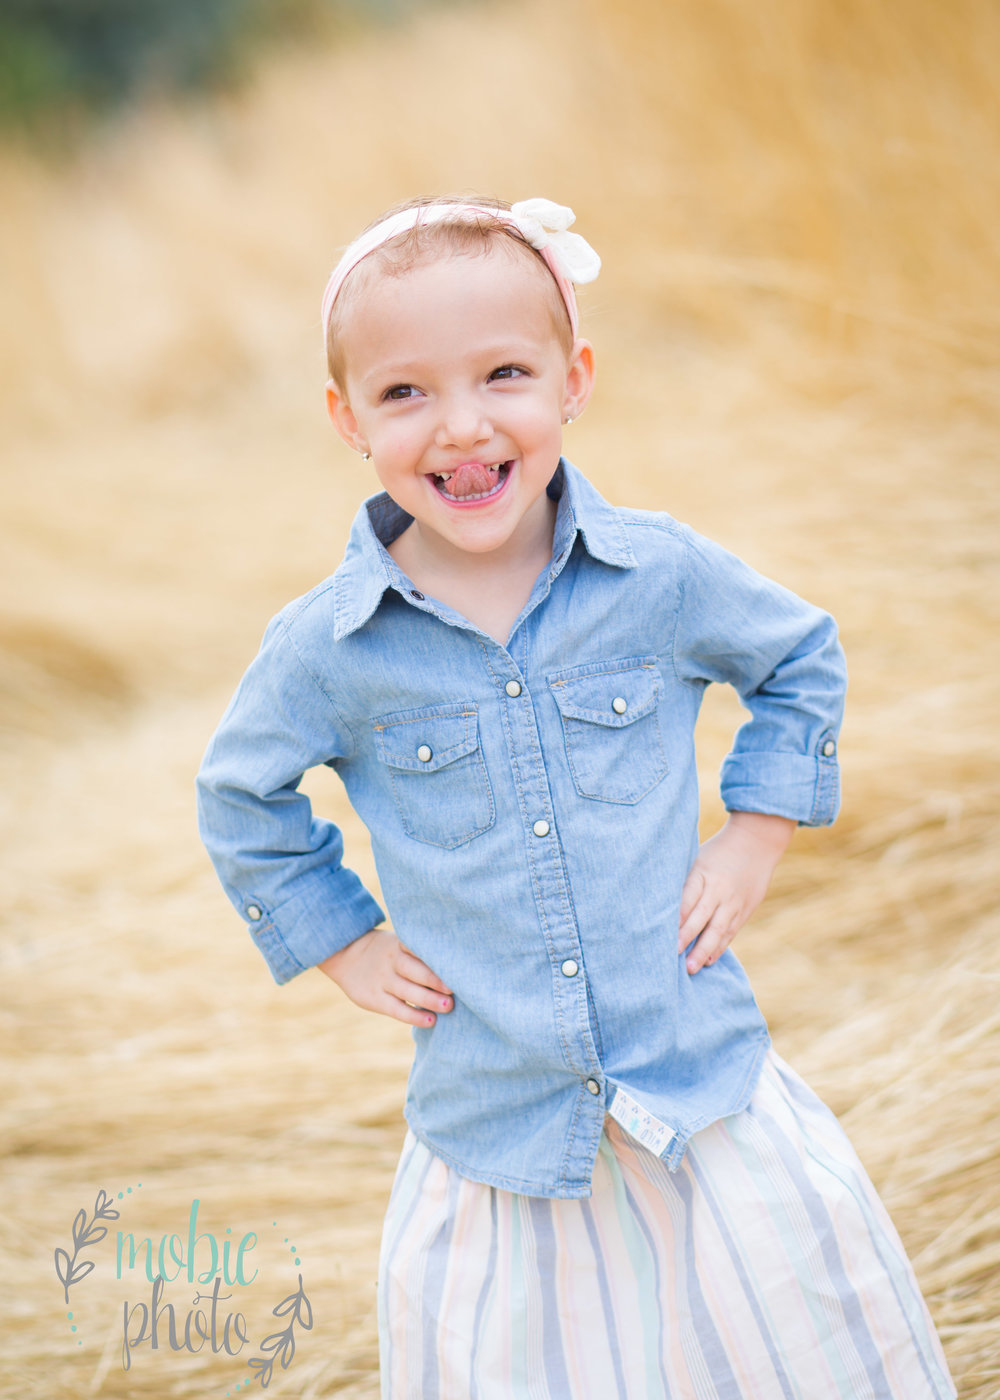 Little girl in denim shirt